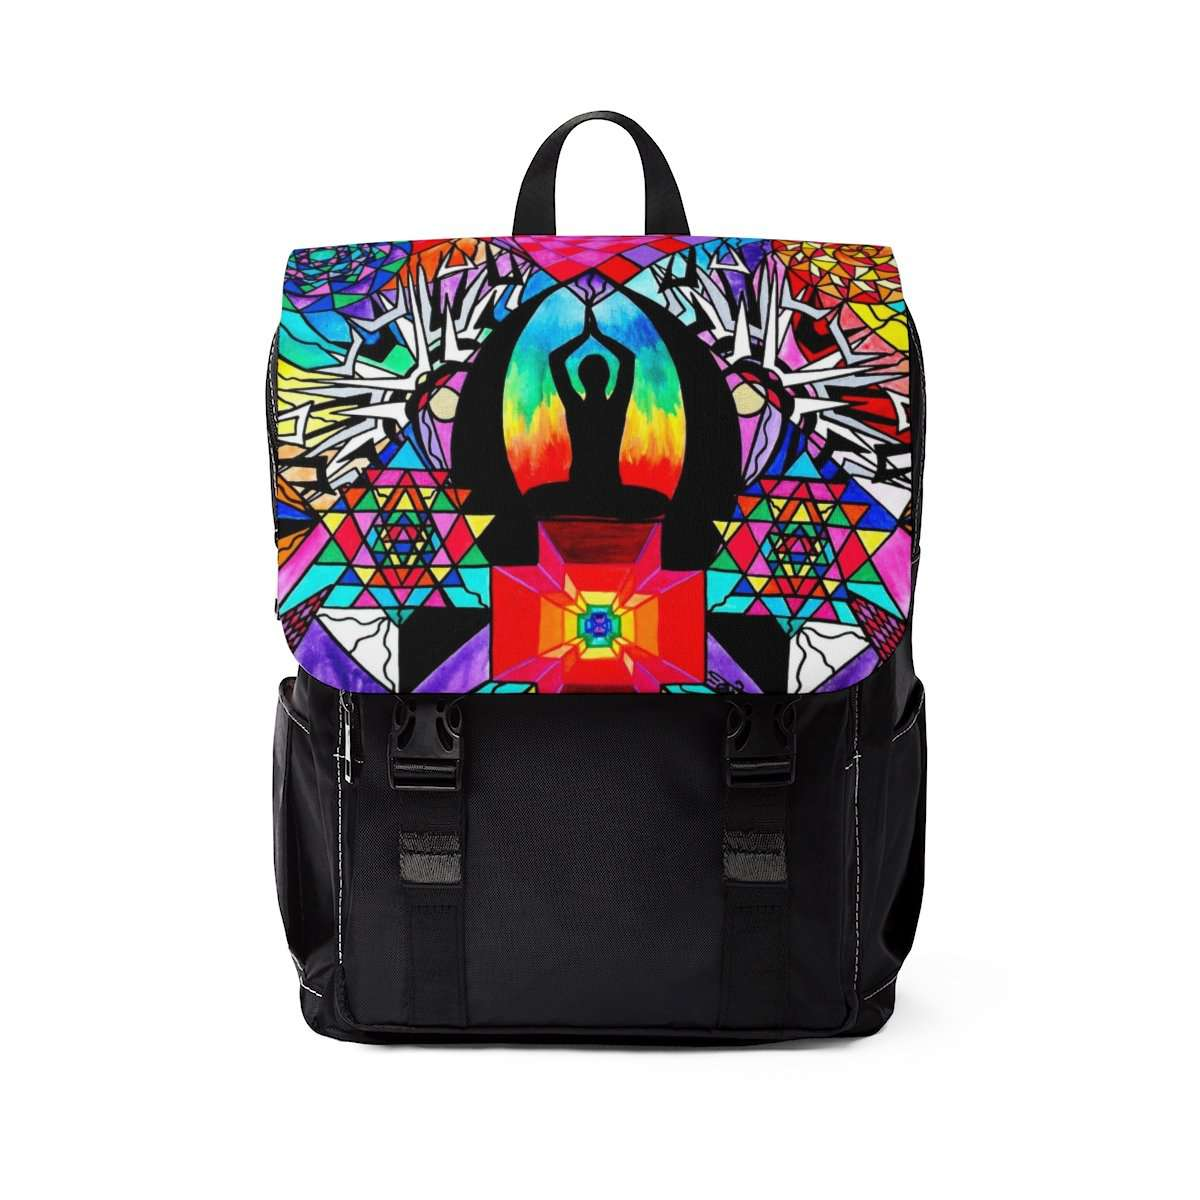 Meditation Aid - Unisex Casual Shoulder Backpack